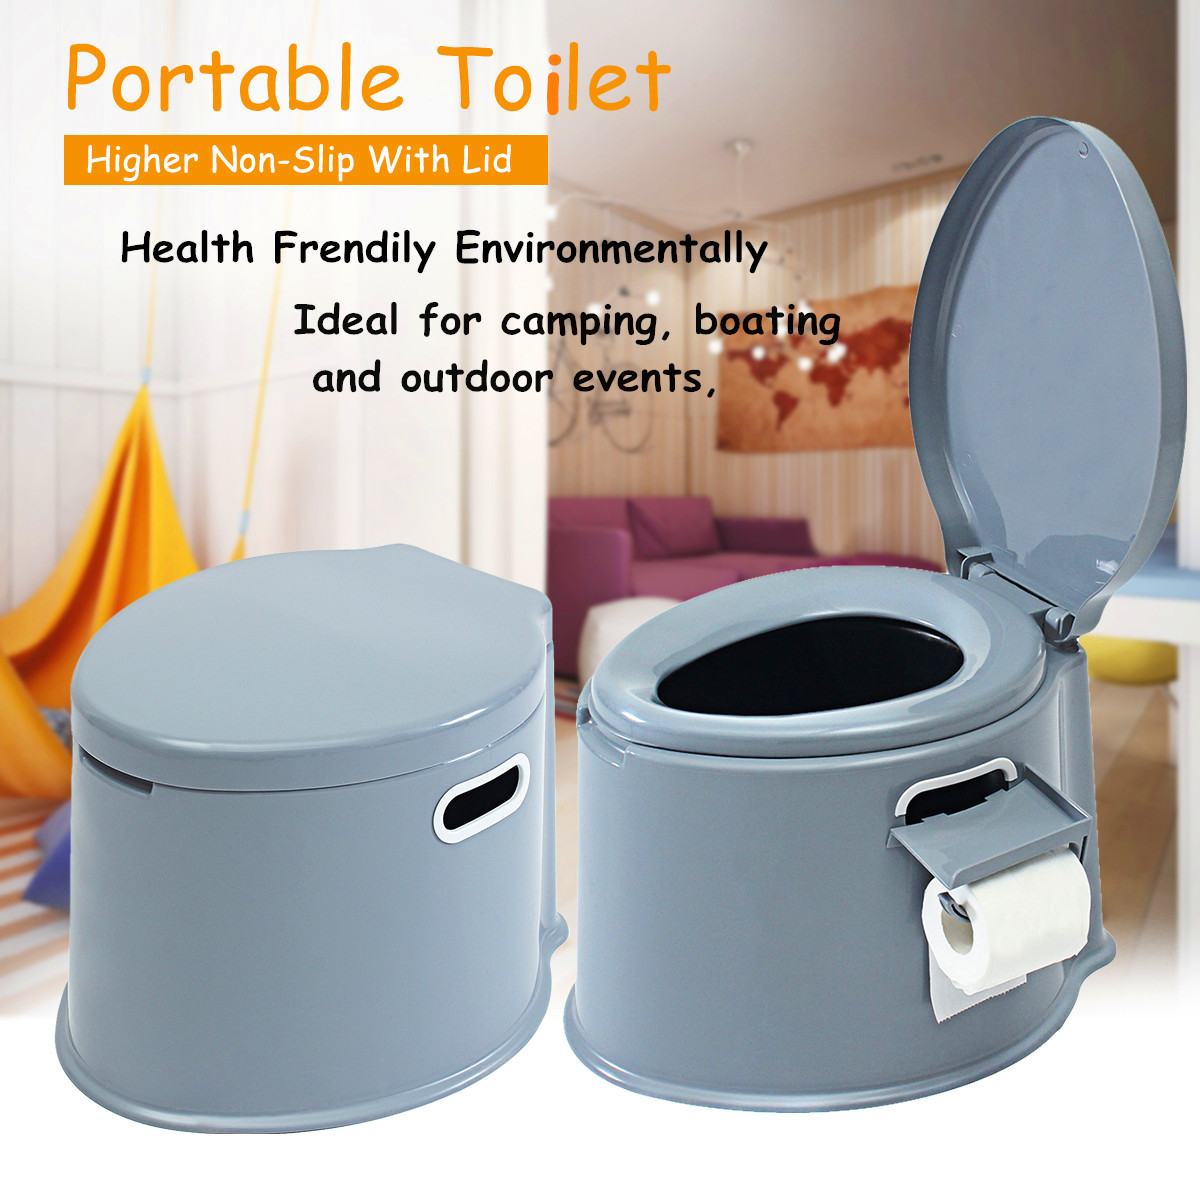 Portable Toilet Compact Potty Seat Travel Camping Caravan Picnic Indoor Outdoor Event... by